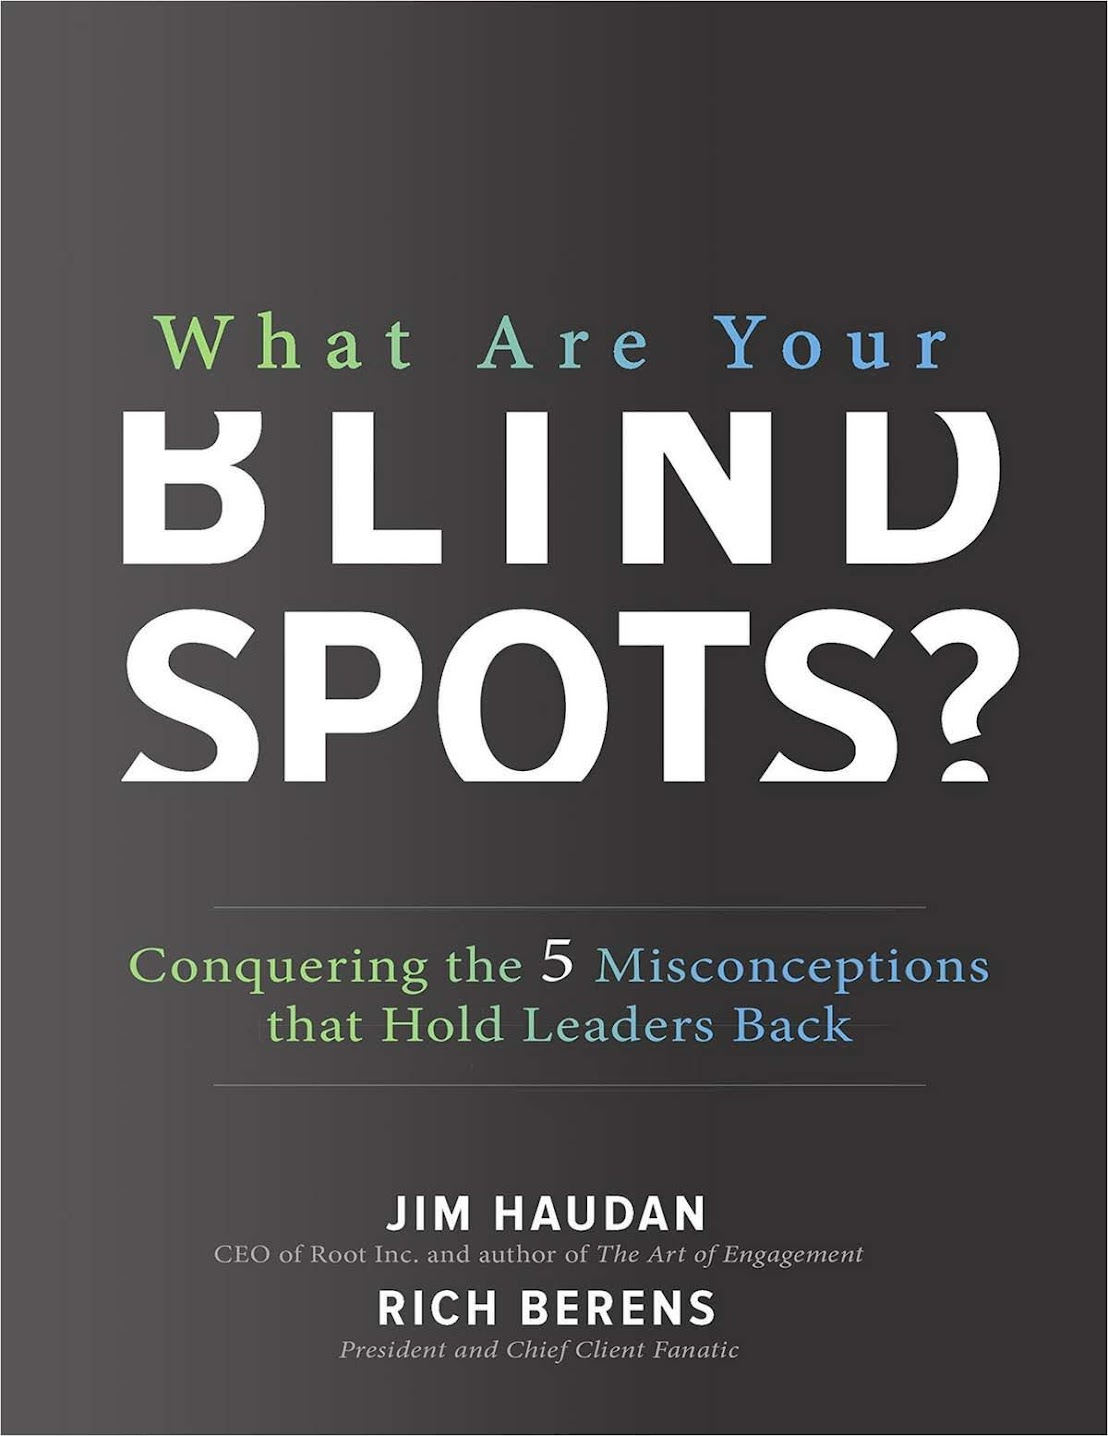 """Summary of """"What Are Your Blind Spots? - Conquering the 5 Misconceptions that Hold Leaders Back"""" by Jim Haudan and Rich Berens"""